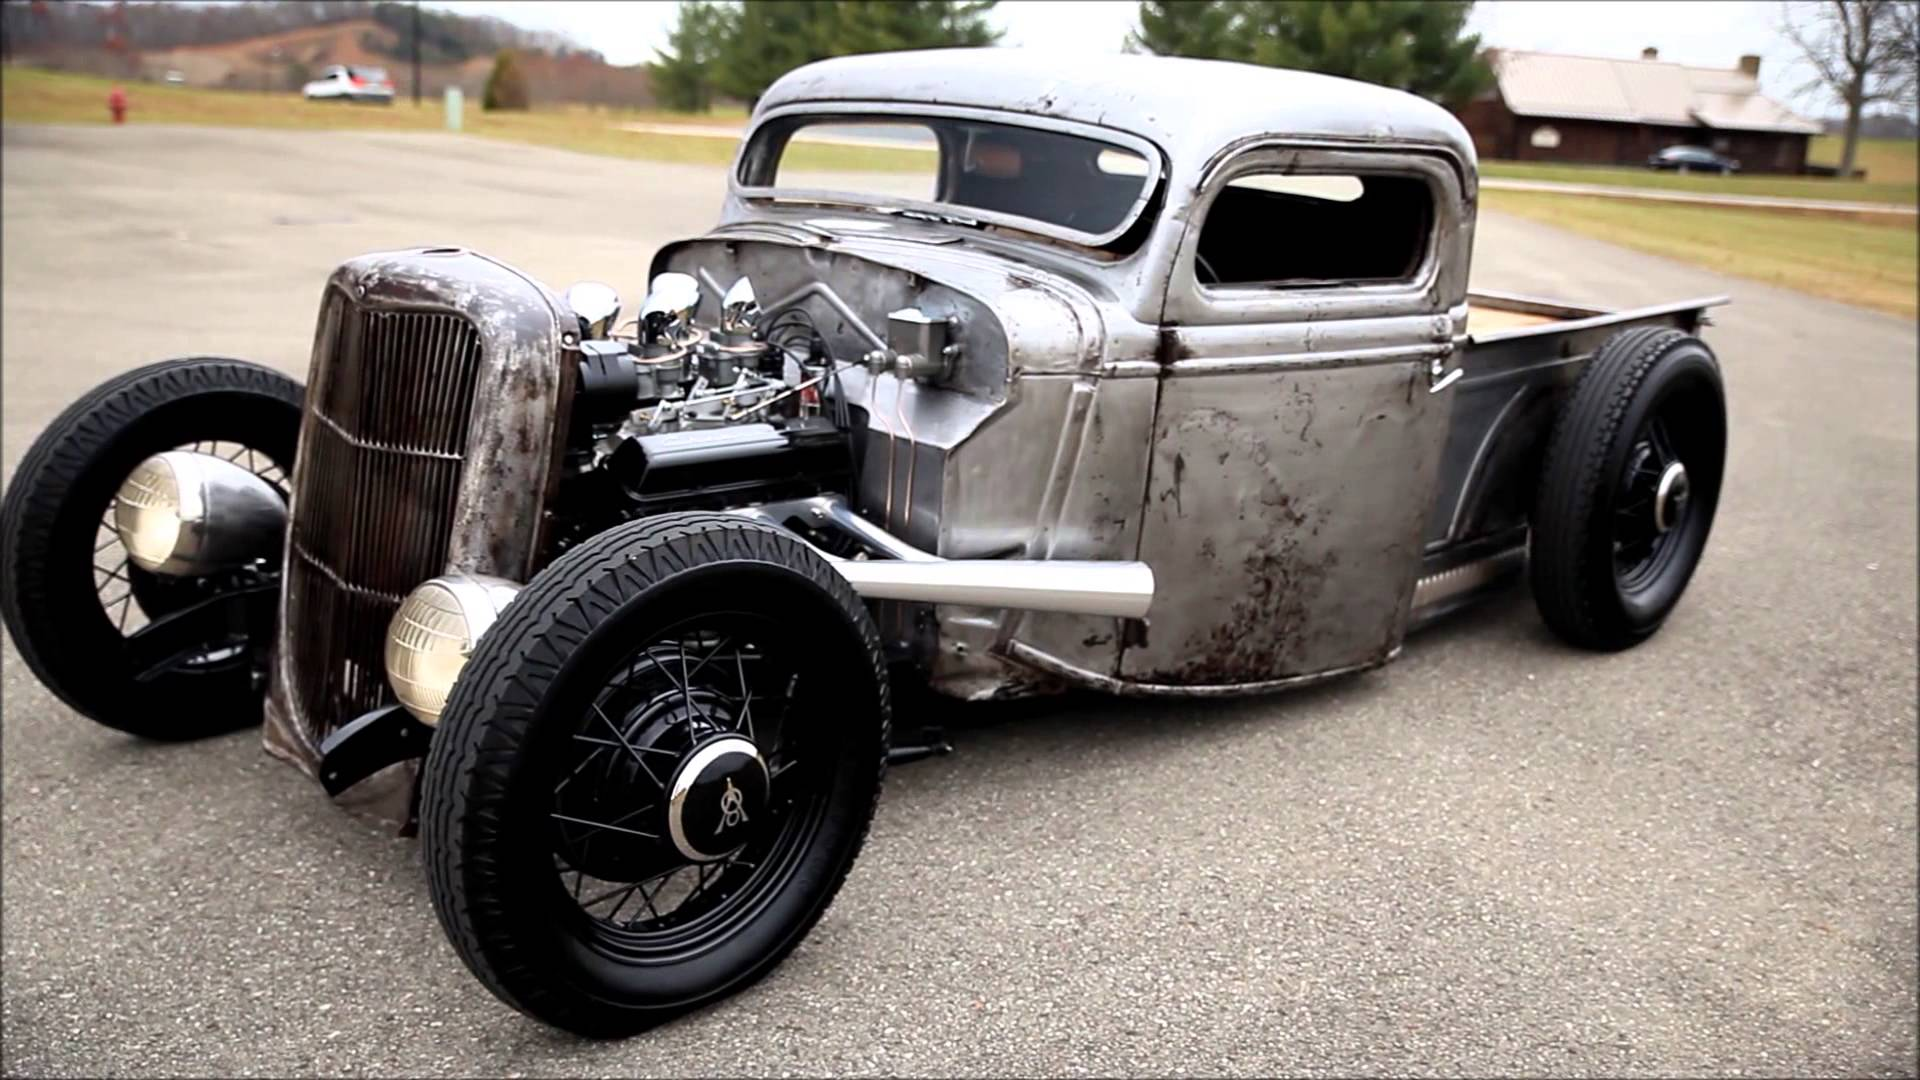 Cherry Looking Raw Metal 1935 Ford Truck Rat Rod